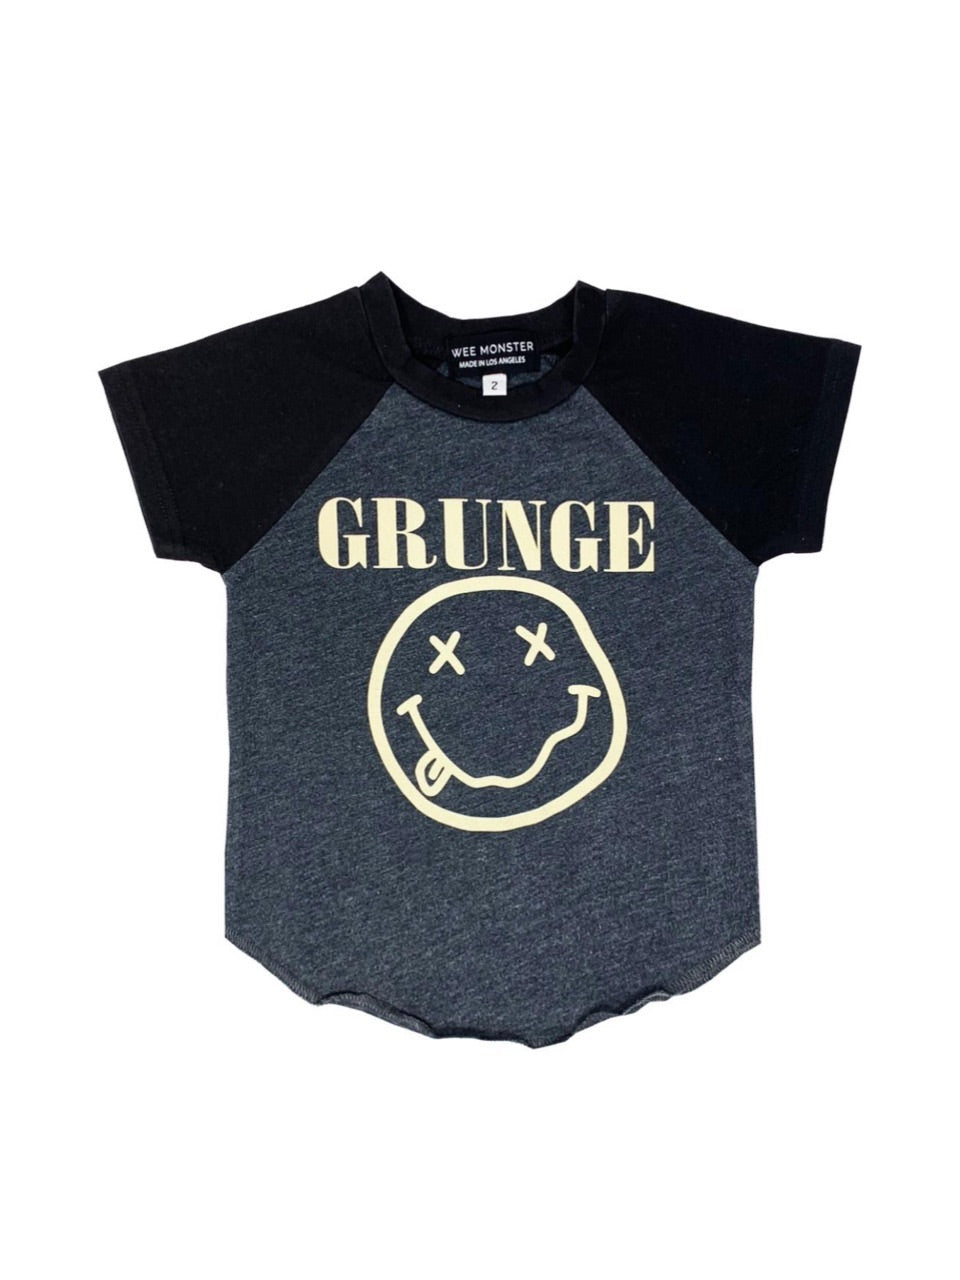 Wee Monster Grunge Raglan